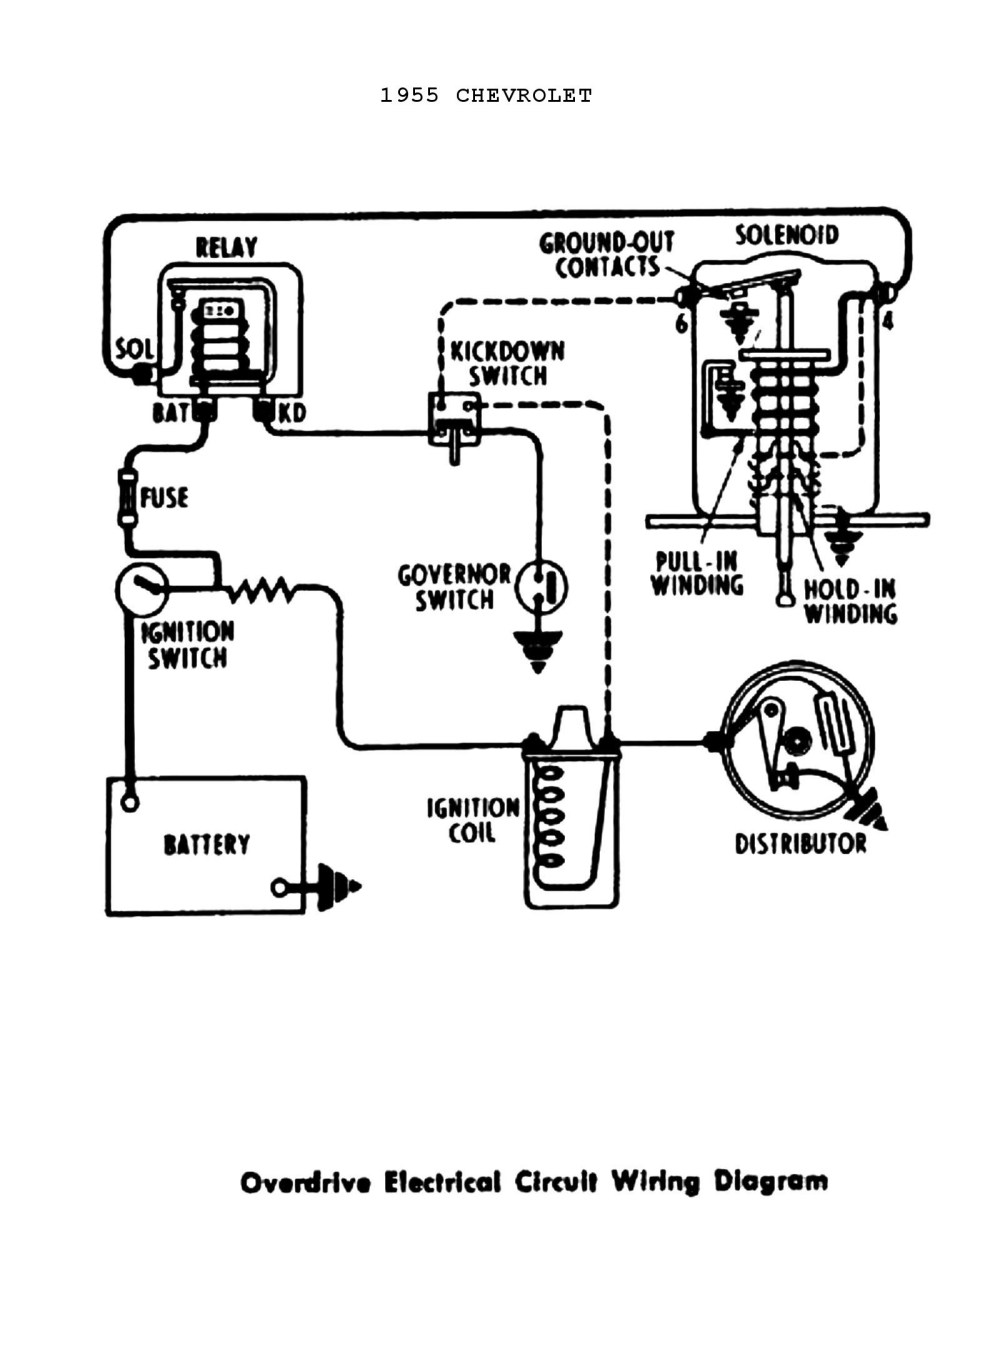 medium resolution of power window switch diagram wiring diagram in addition 57 chevy heater diagram also 1996 chevy of